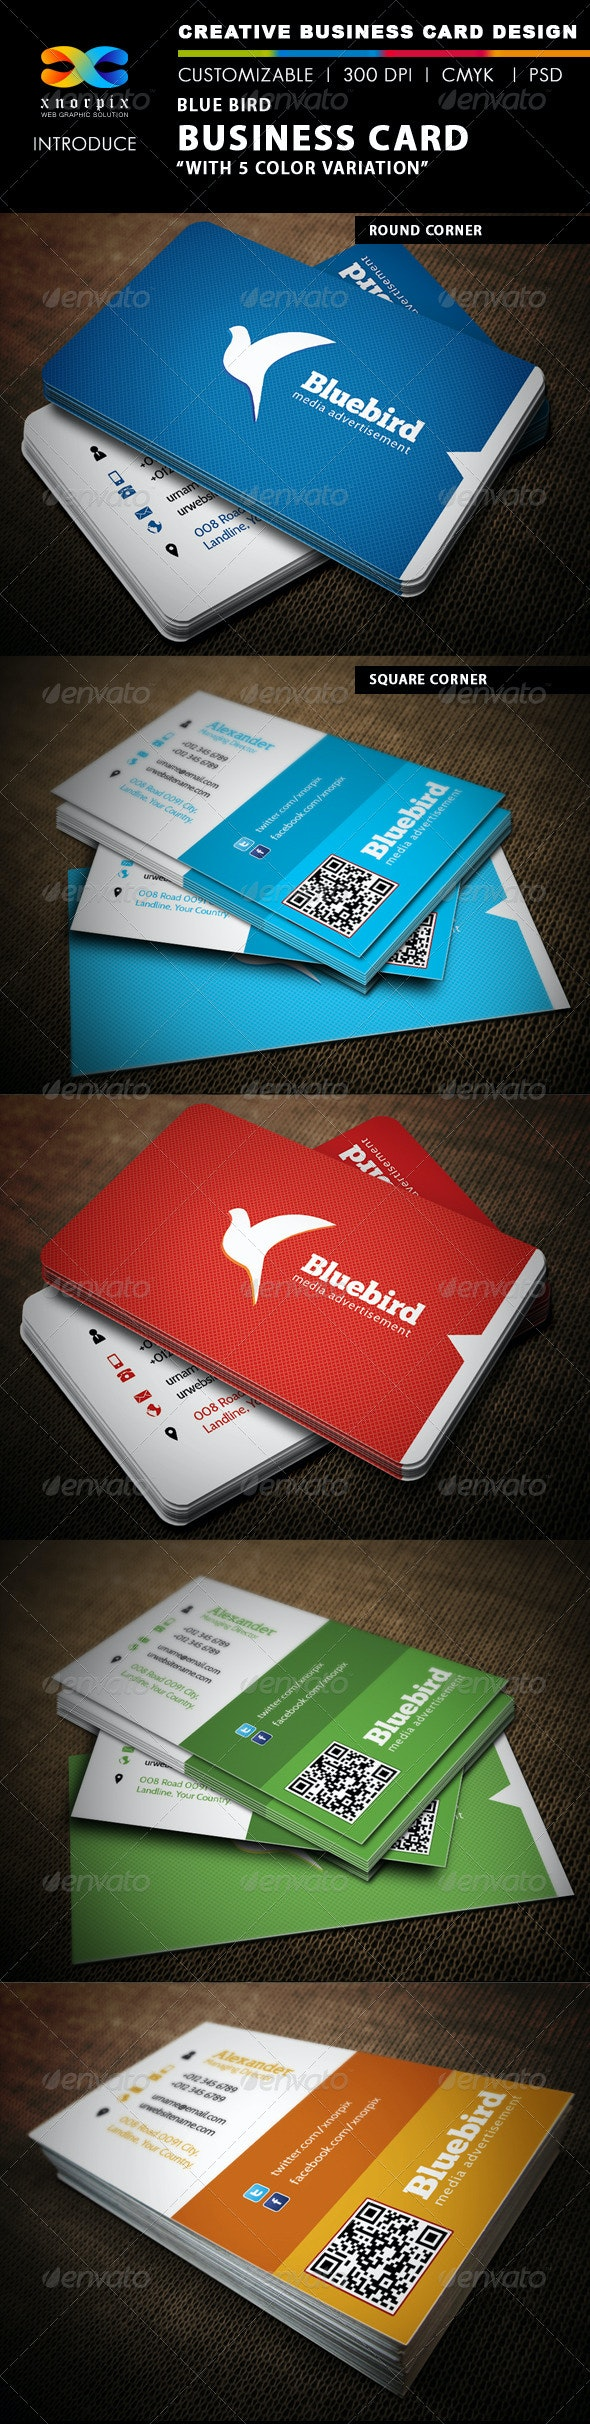 Blue Bird Business Card - Corporate Business Cards